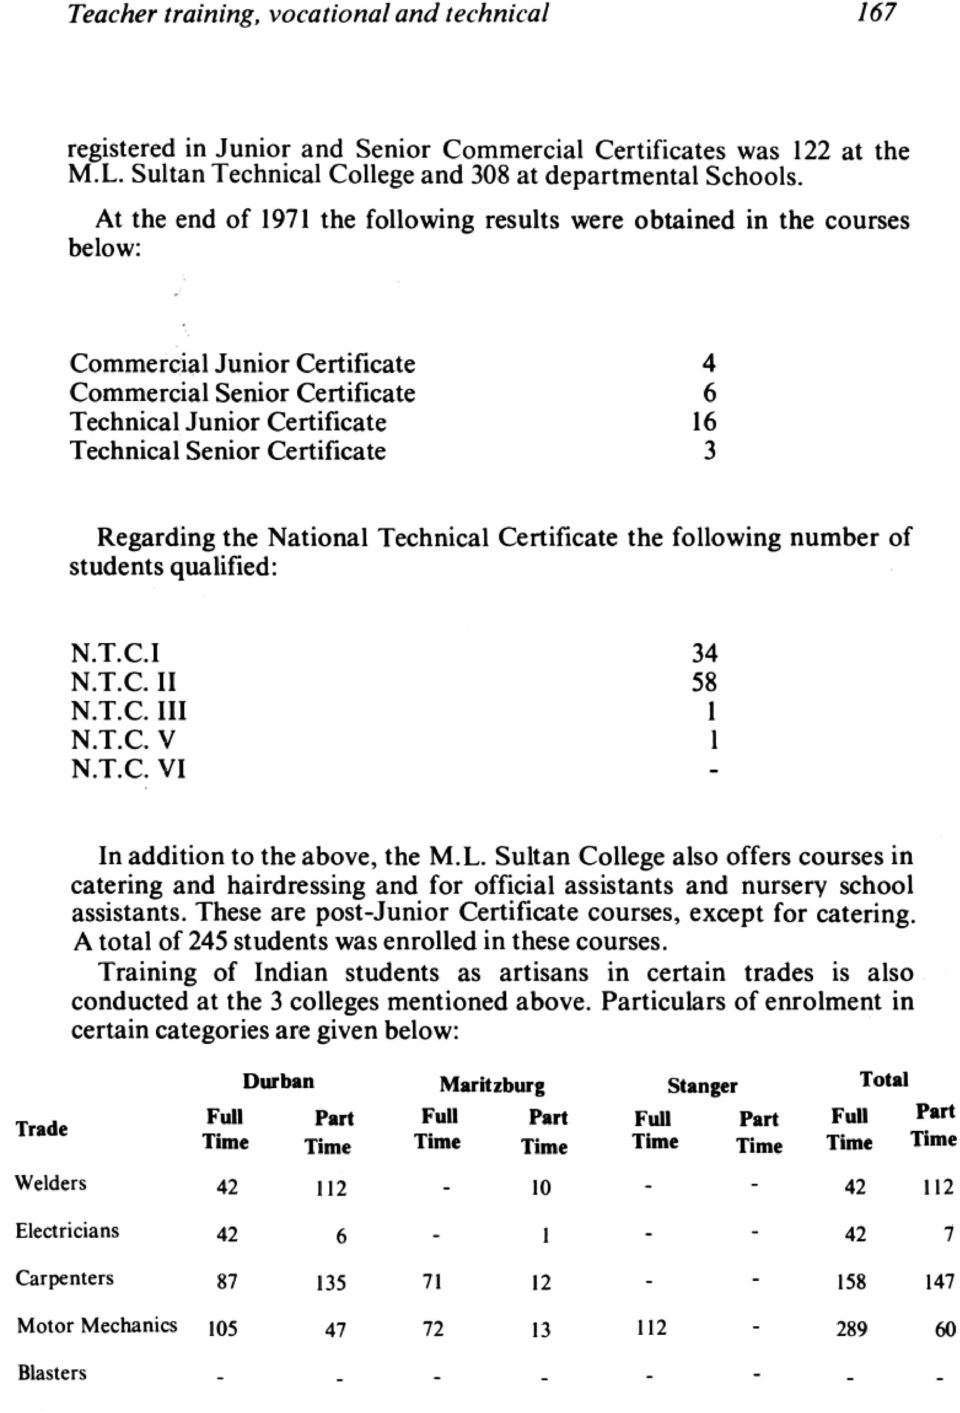 3 Regarding the National Technical Certificate the following number of students qualified: N.T.CI N.T.C II N.T.C III N.T.C V N.T.C VI 34 58 I I In addition to the above, the M.L.